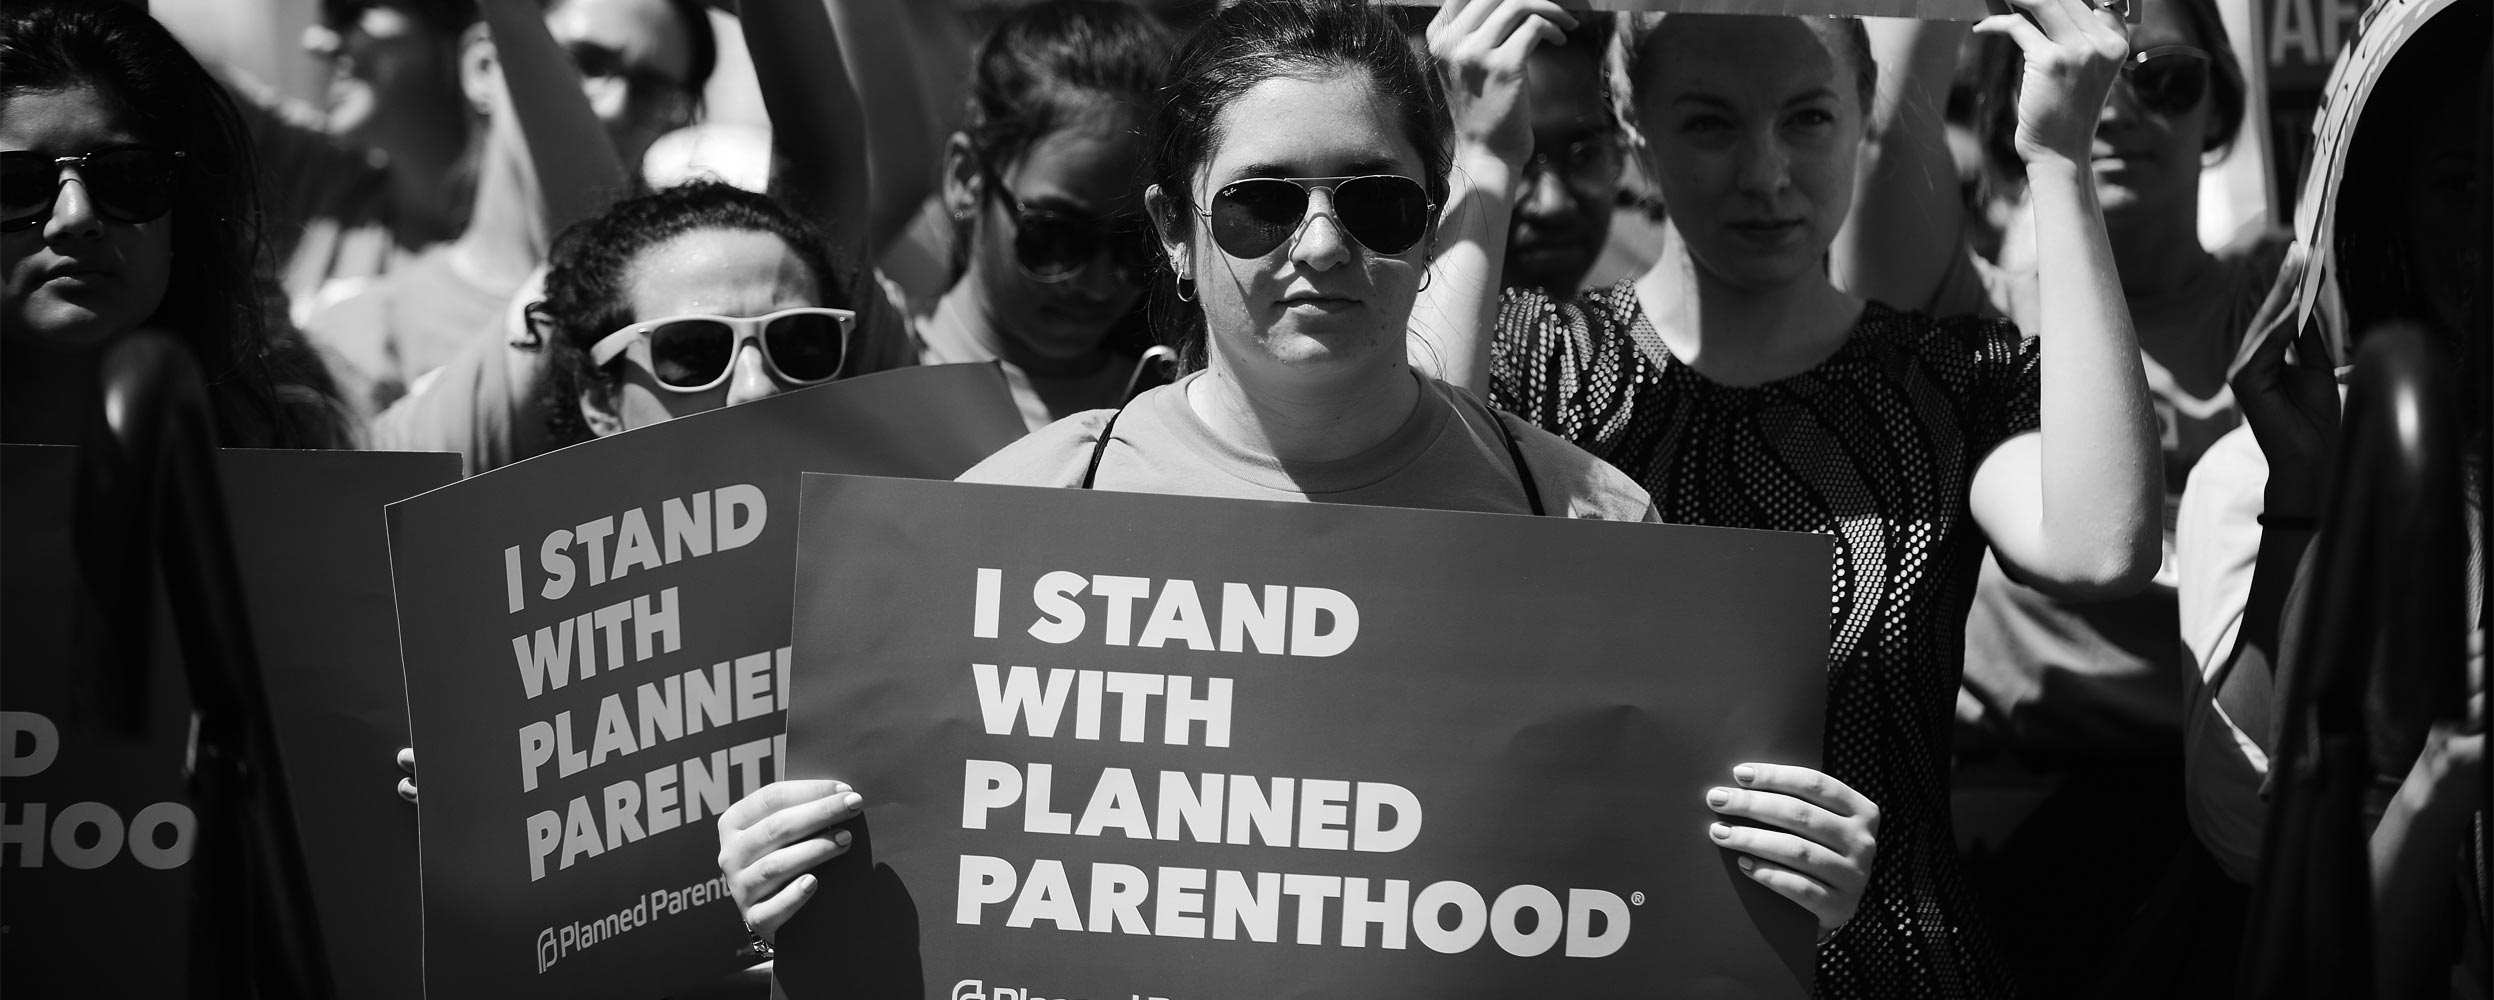 Sixty-Two Percent View Planned Parenthood Favorably